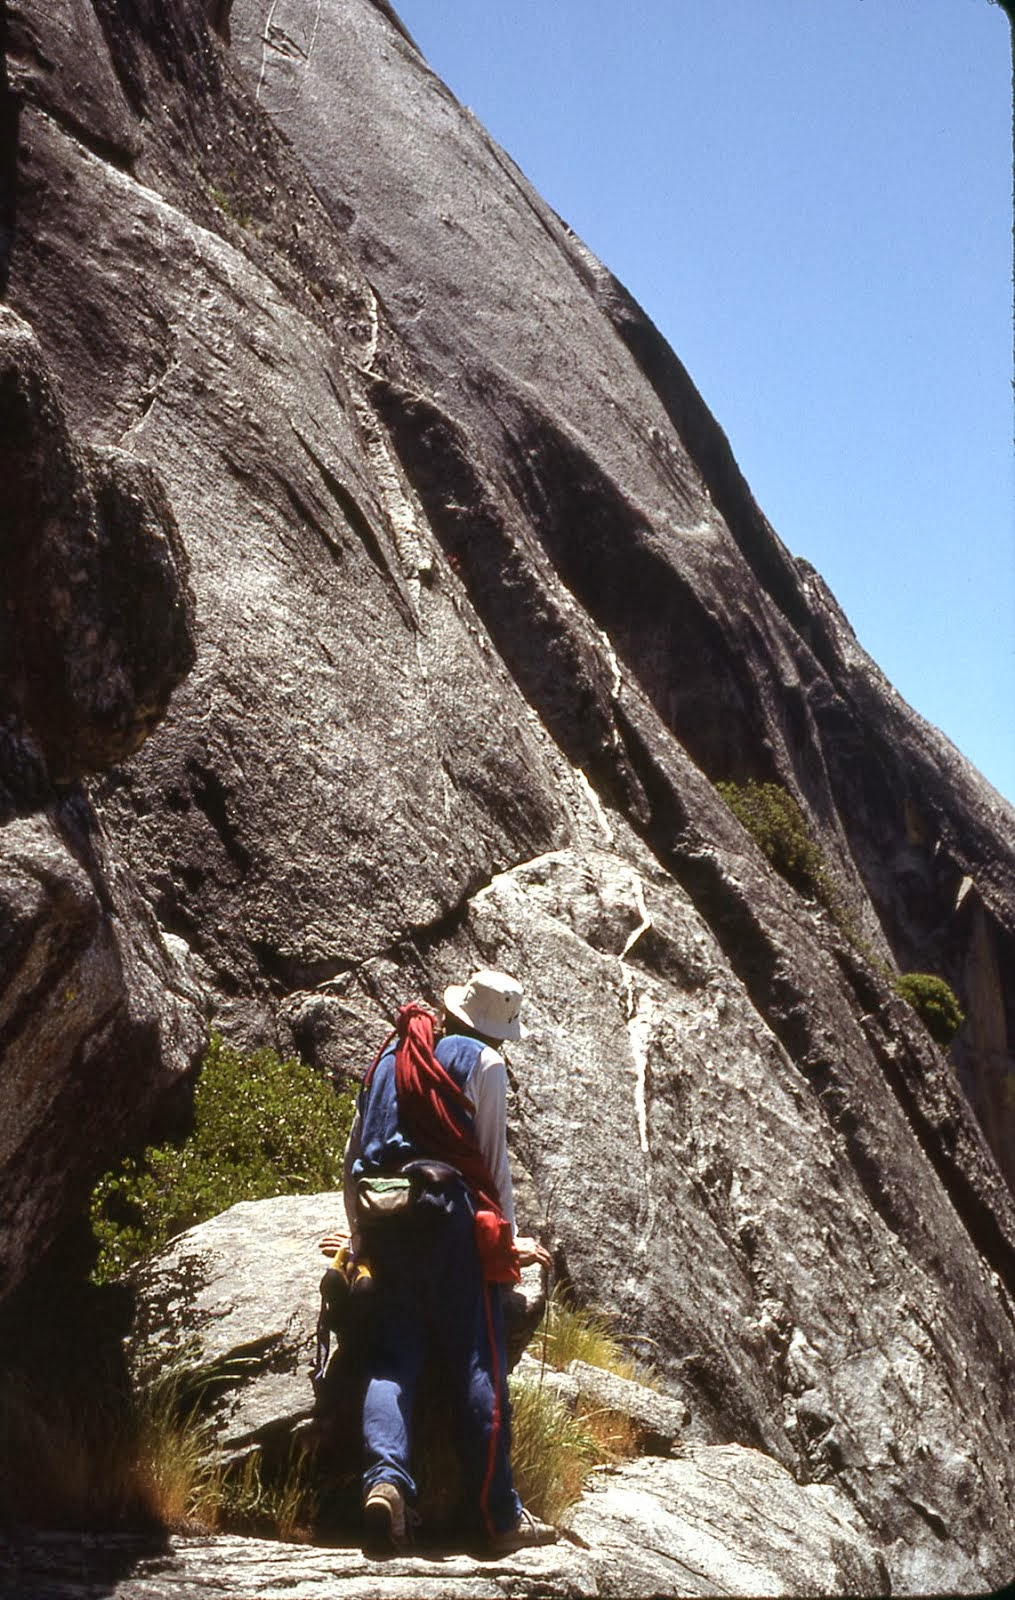 Far South end of Zocalo Ledge is the start of the West Face route